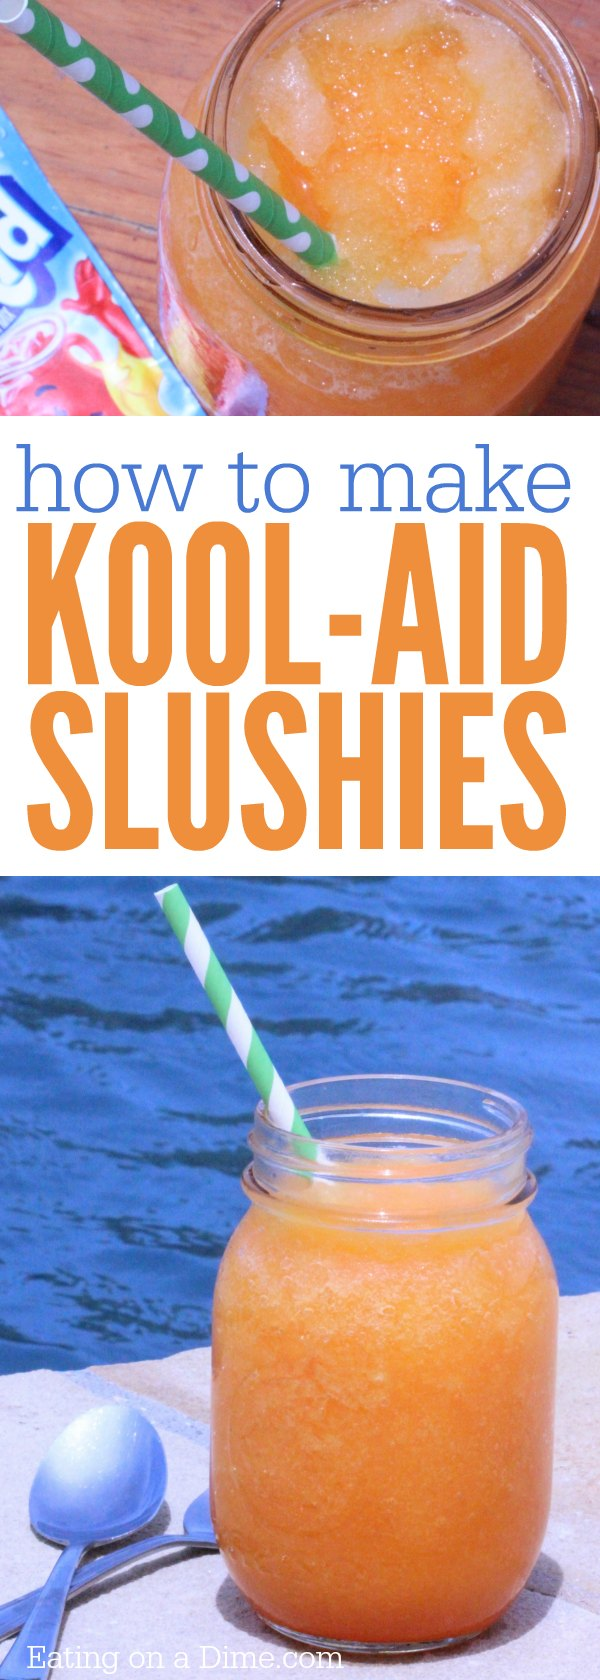 How to make a Slushie with Kool Aid